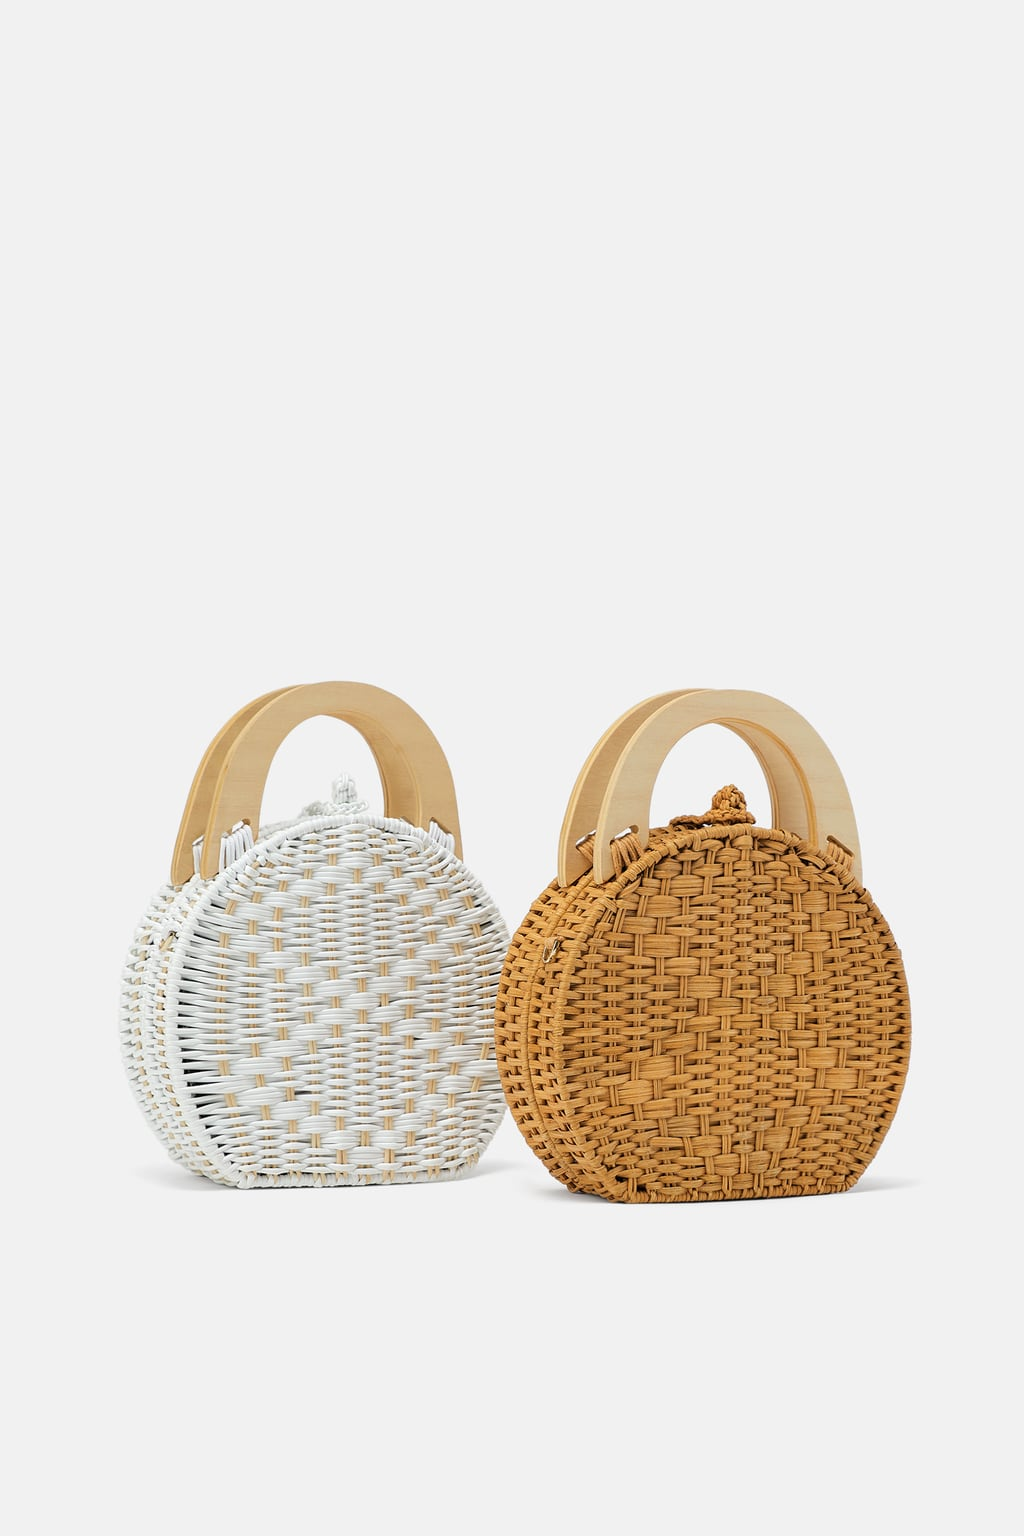 NATURAL HANDBAG - Colored box-shaped handbag. Made of natural materials. Wooden handles. Adjustable and removable shoulder strap